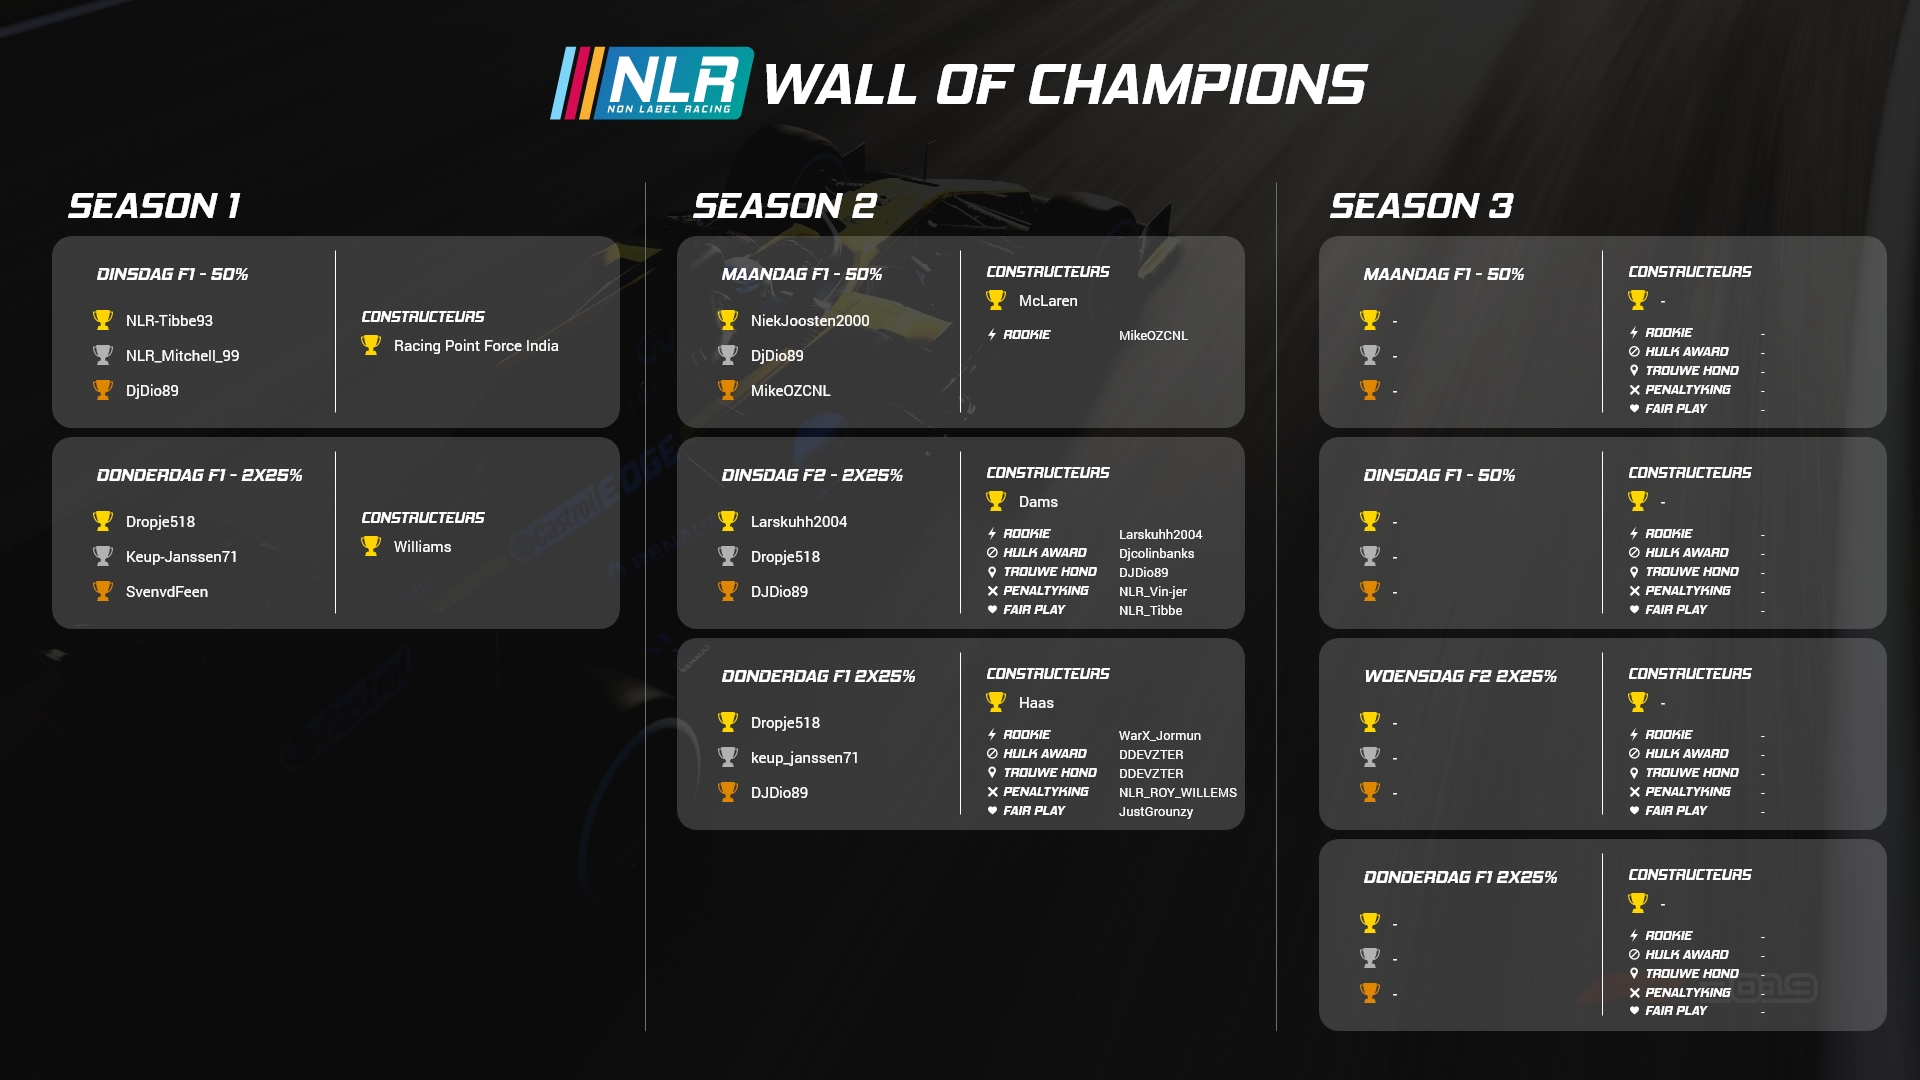 Wall Of Champions NLR